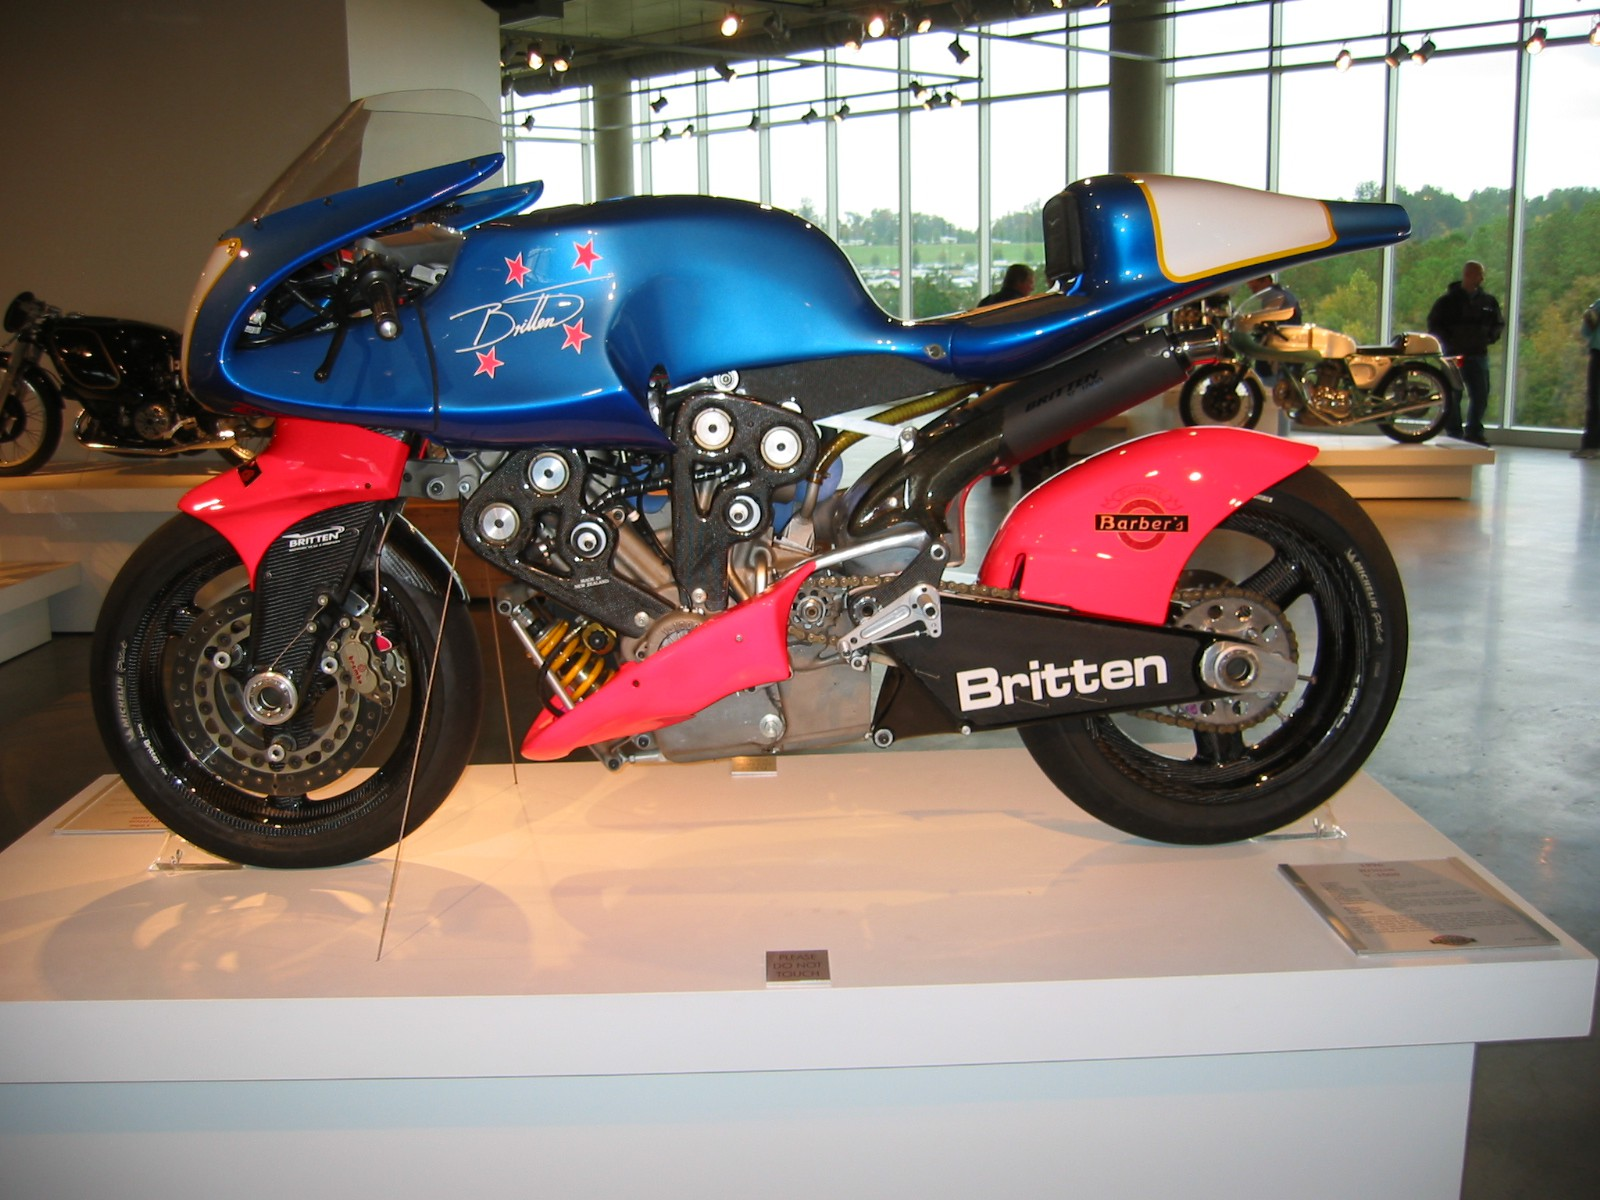 Britten V1000 - The Kiwi Brewed Champion 2